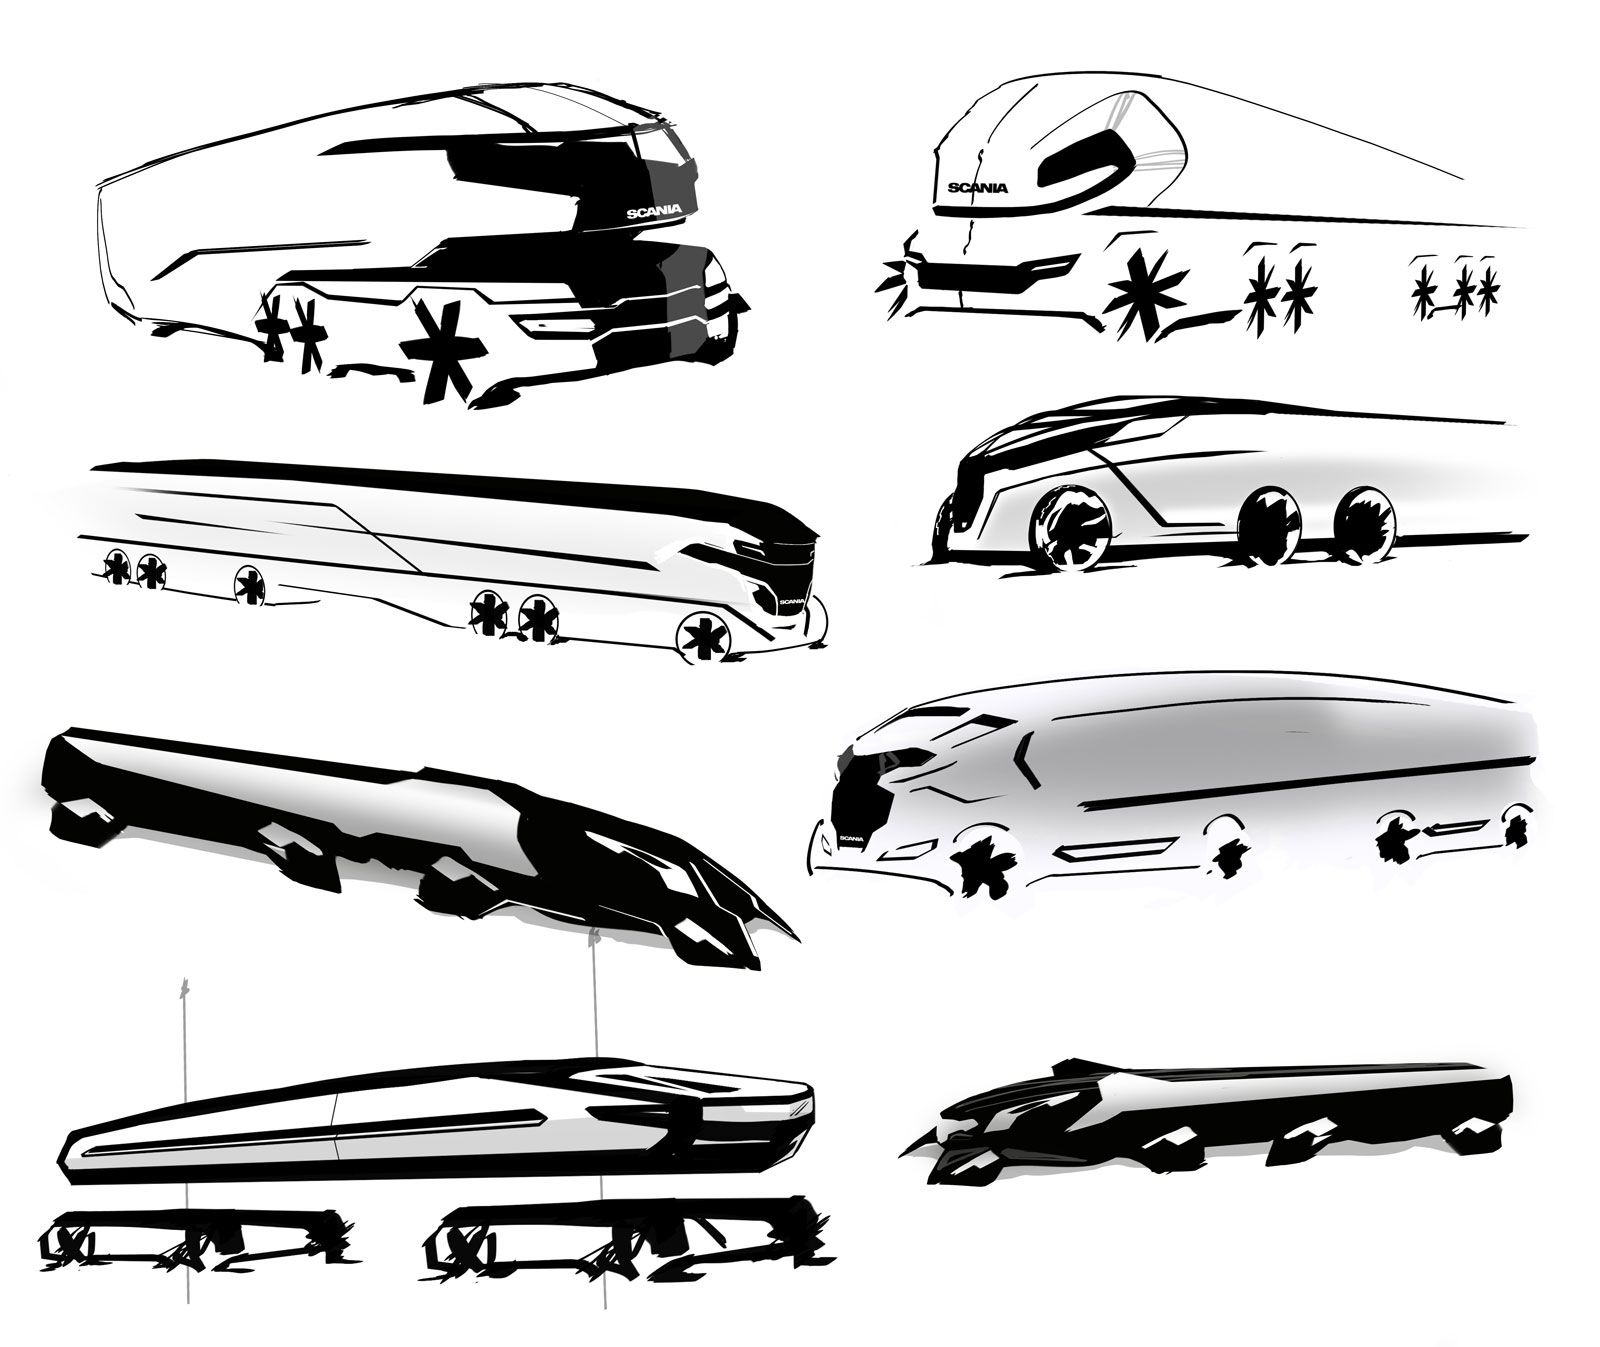 Scania-Truck-Concept-Design-Sketches-by-Michael-Bedell.jpg (1600 ...